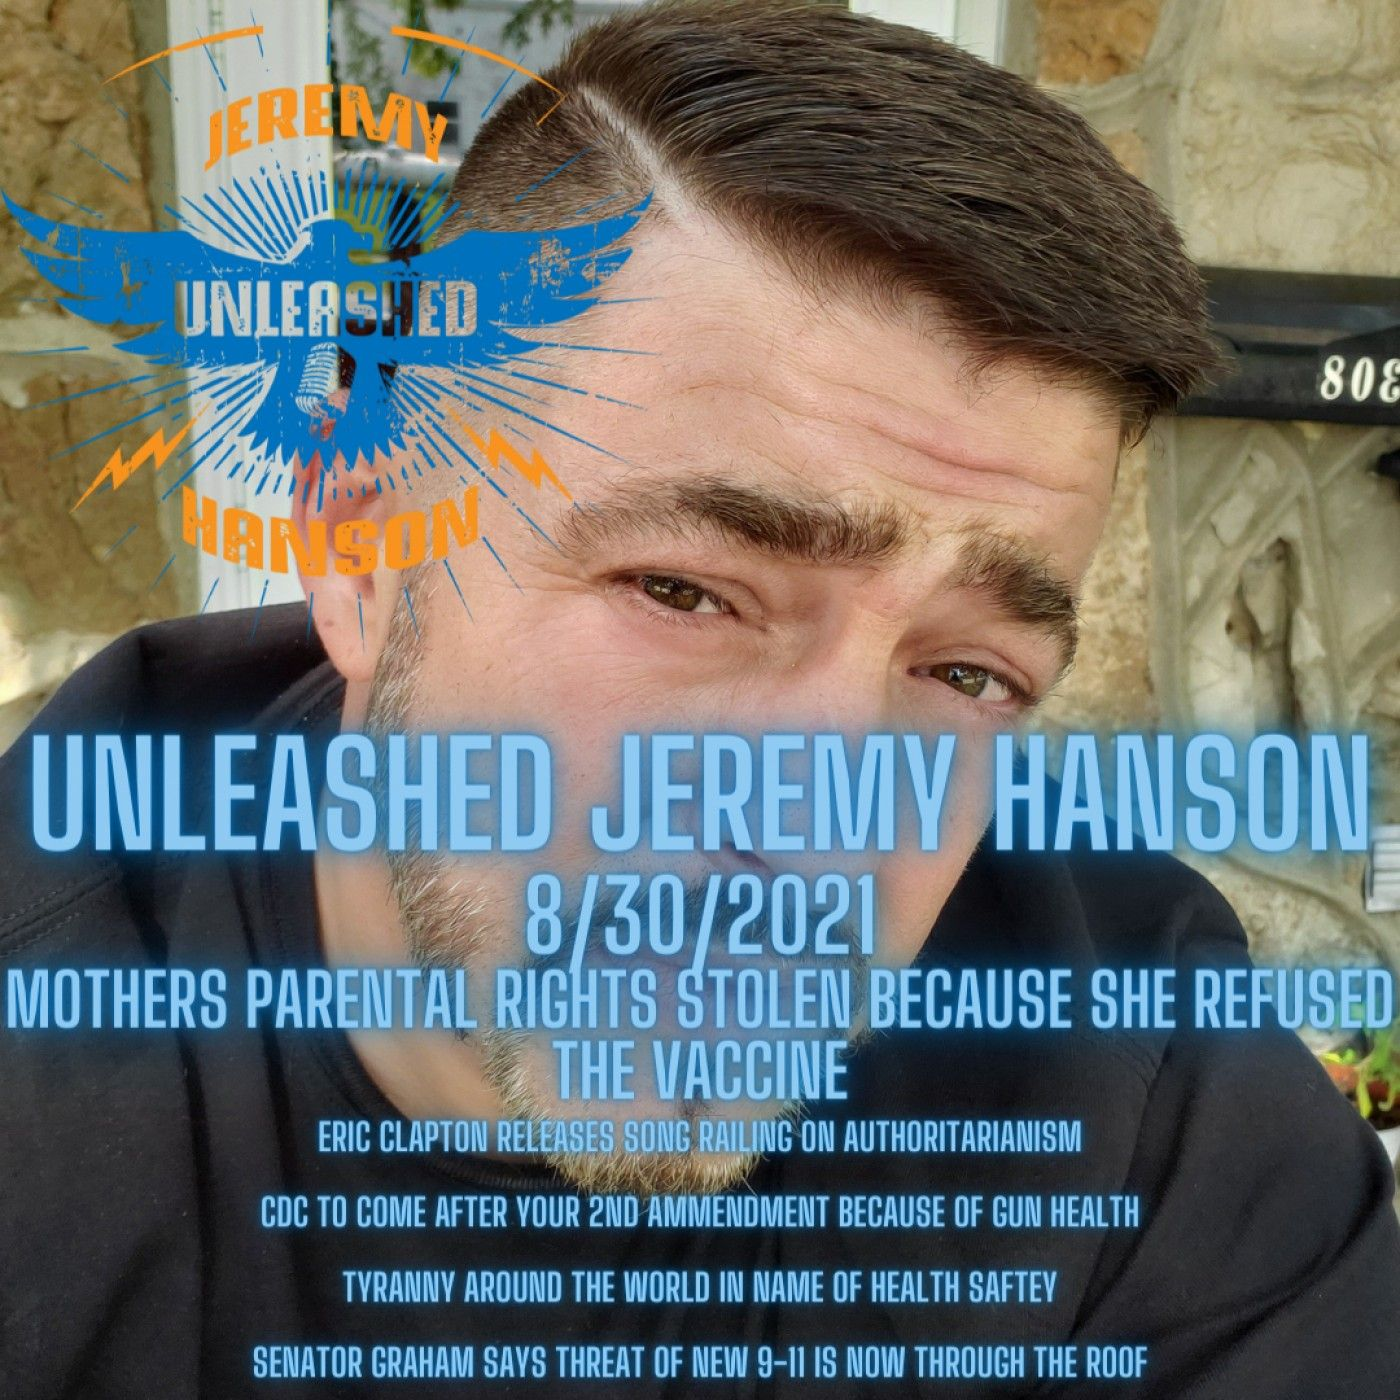 Unleashed Jeremy Hanson 8/31/2021 Outrage and Tyranny Il judge steals parental rights from mother after she refuses vaccine because of adver